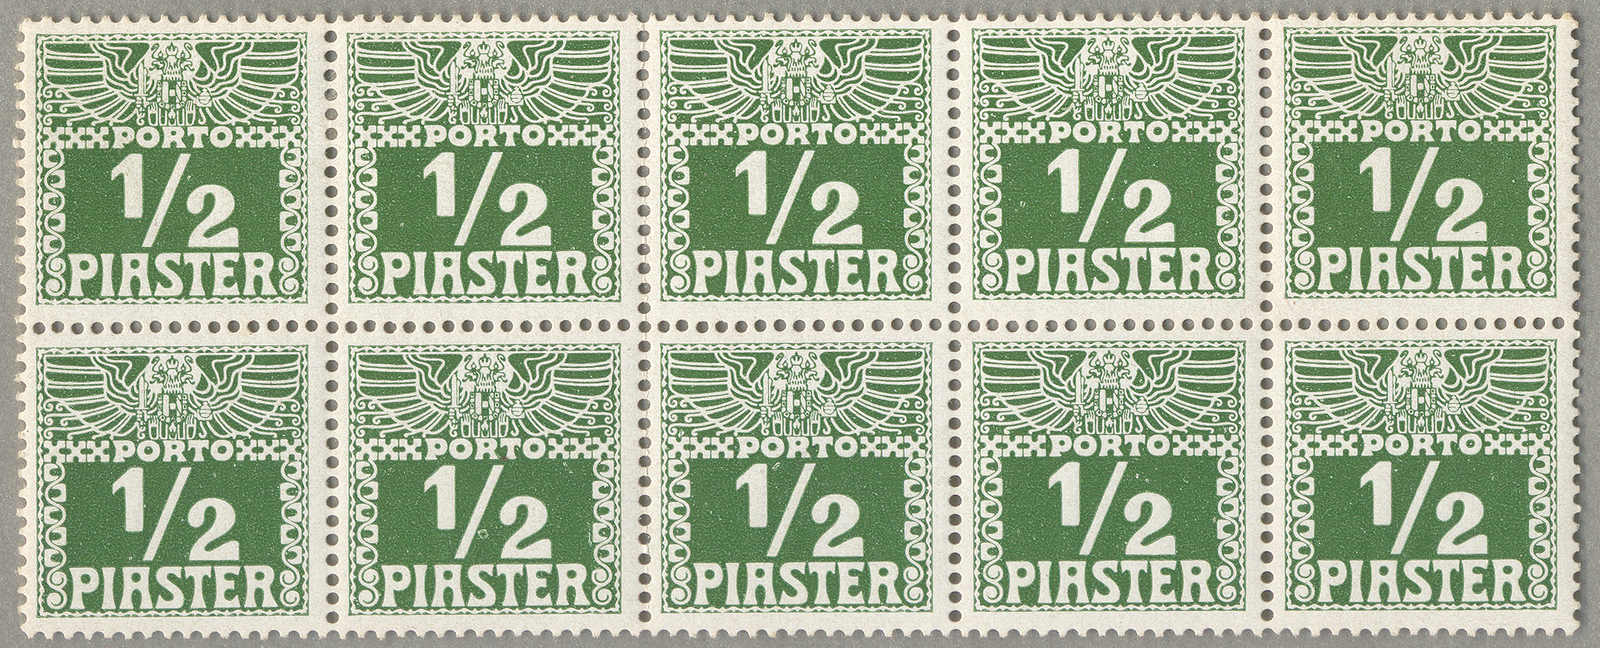 Lot 40308 - europa österreich post in der levante -  classicphil GmbH 6'th classicphil Auction - Day 3